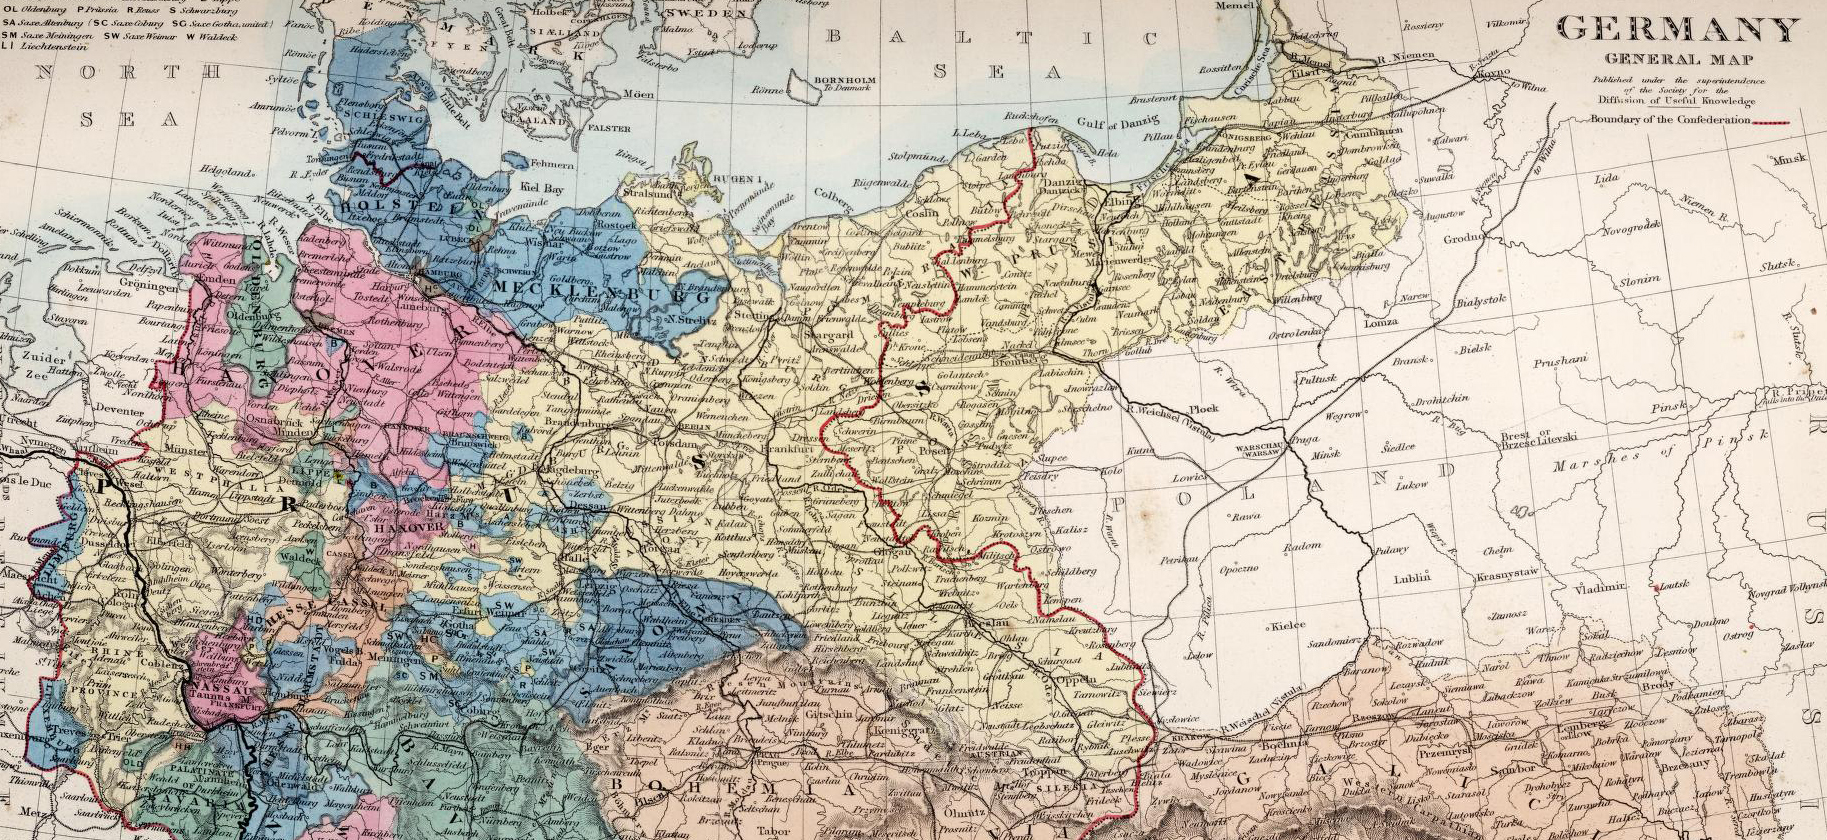 german states, historical states of germany, research roadmap